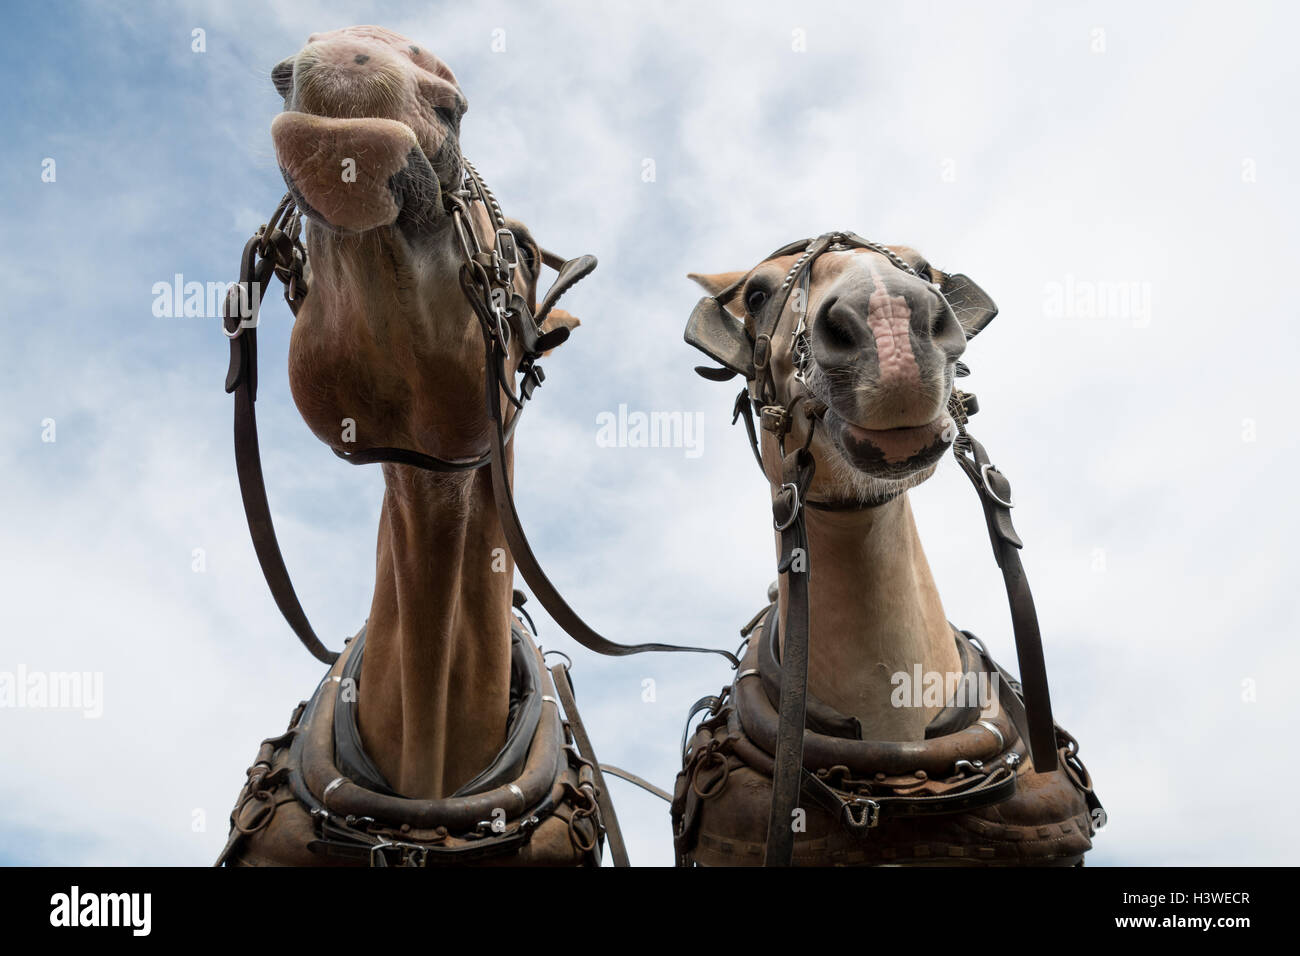 Two Draft Horses - Stock Image